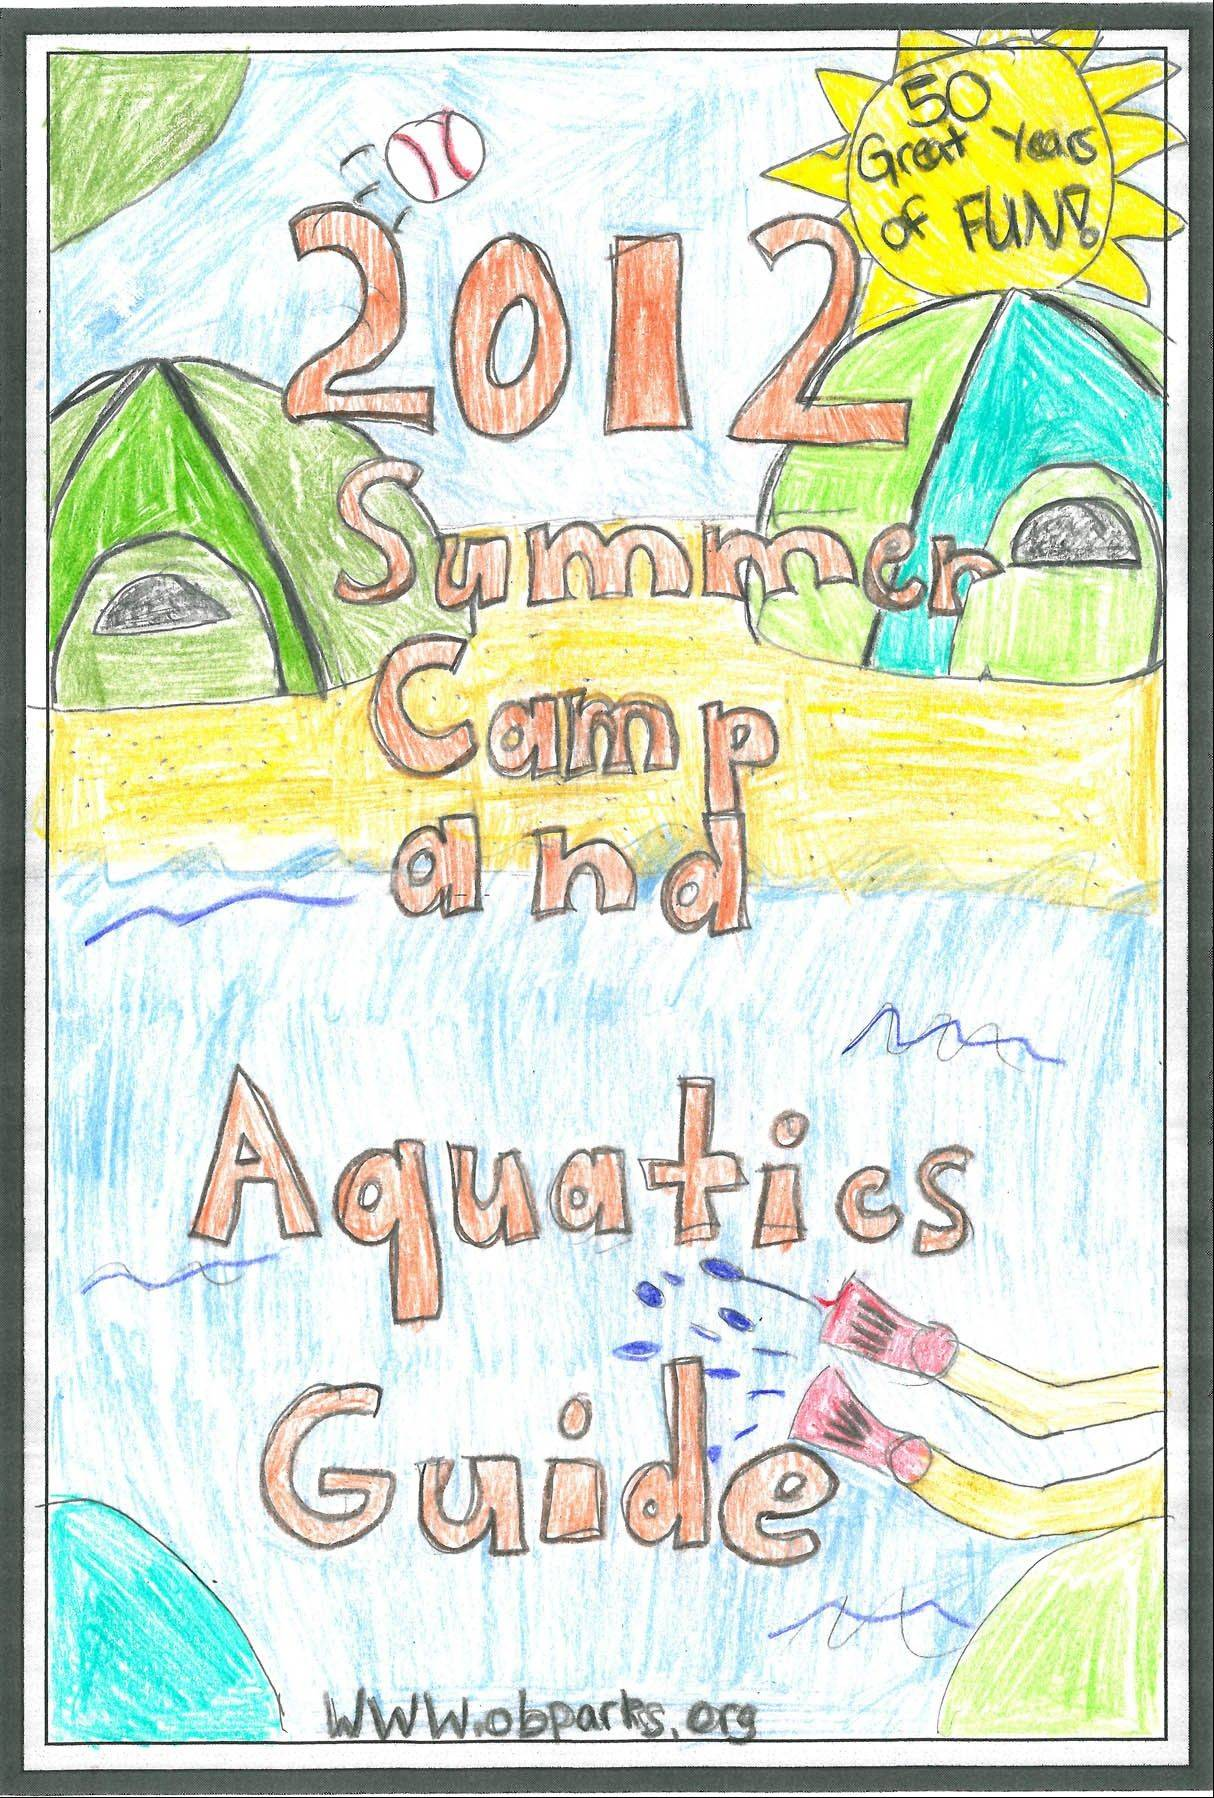 Fourth-grader Maggie Huber of Oak Brook submitted the winning design for last year's Summer Camp and Aquatics Guide.